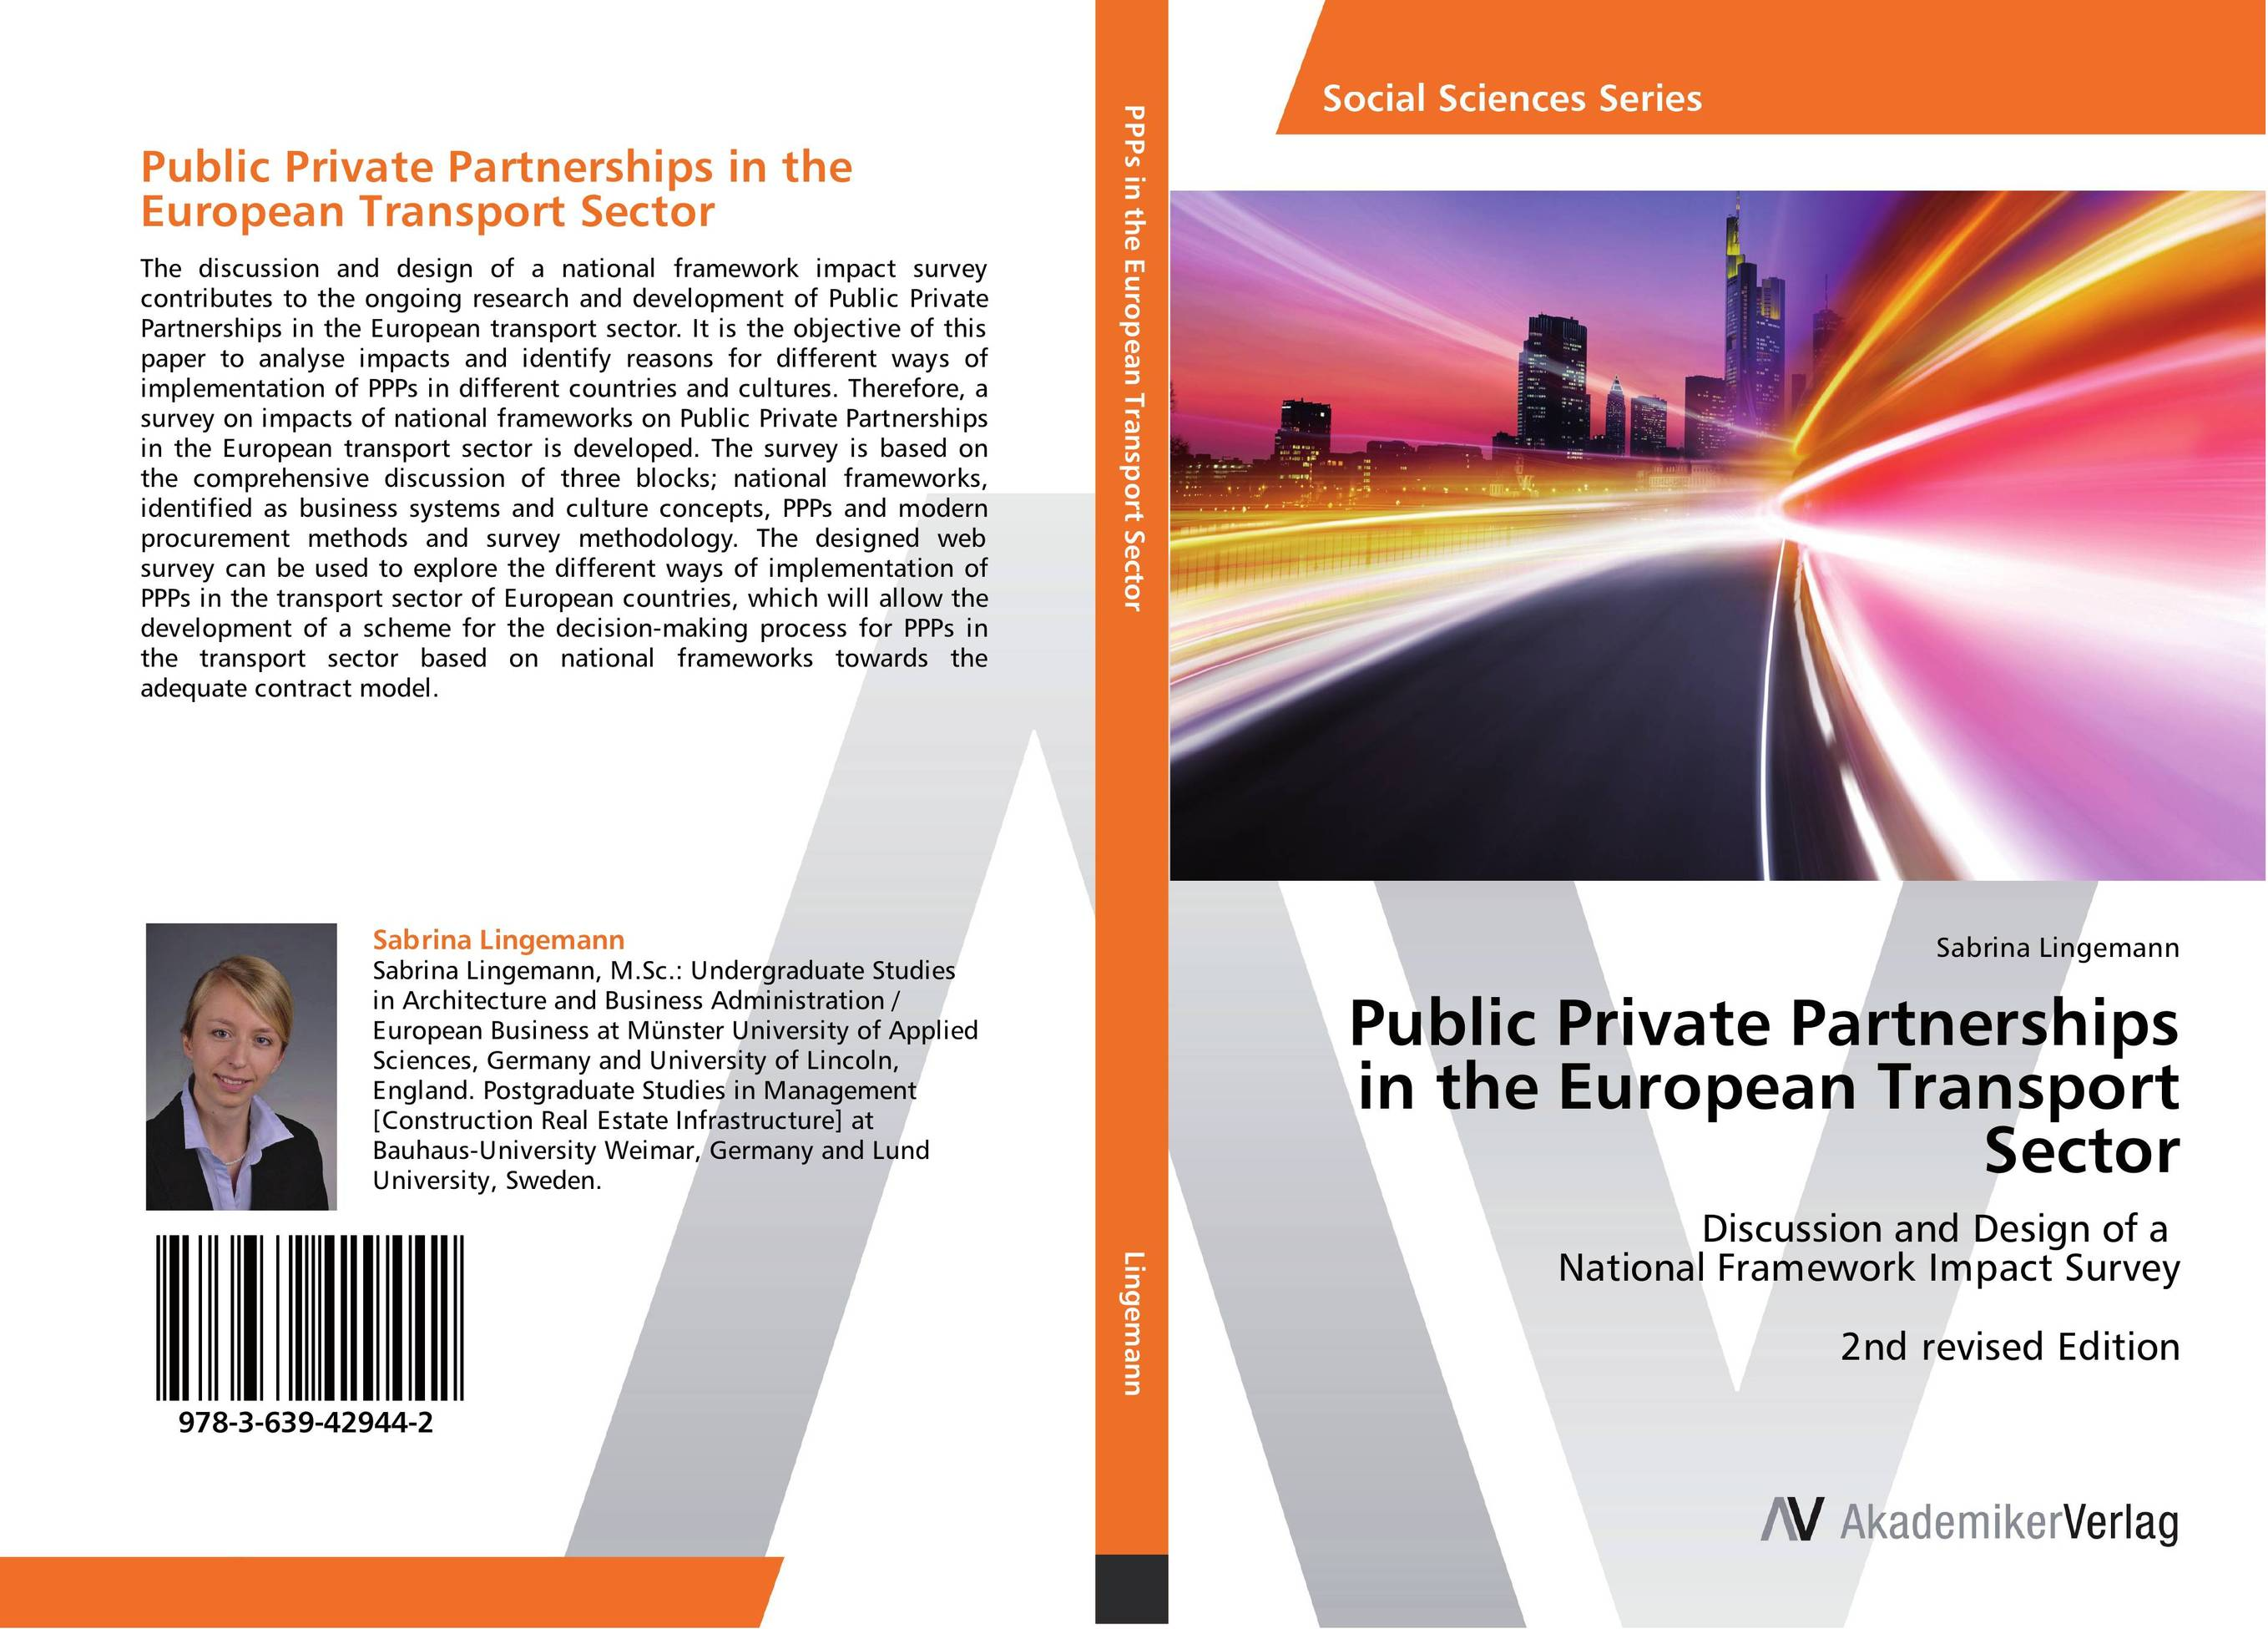 Public Private Partnerships in the European Transport Sector